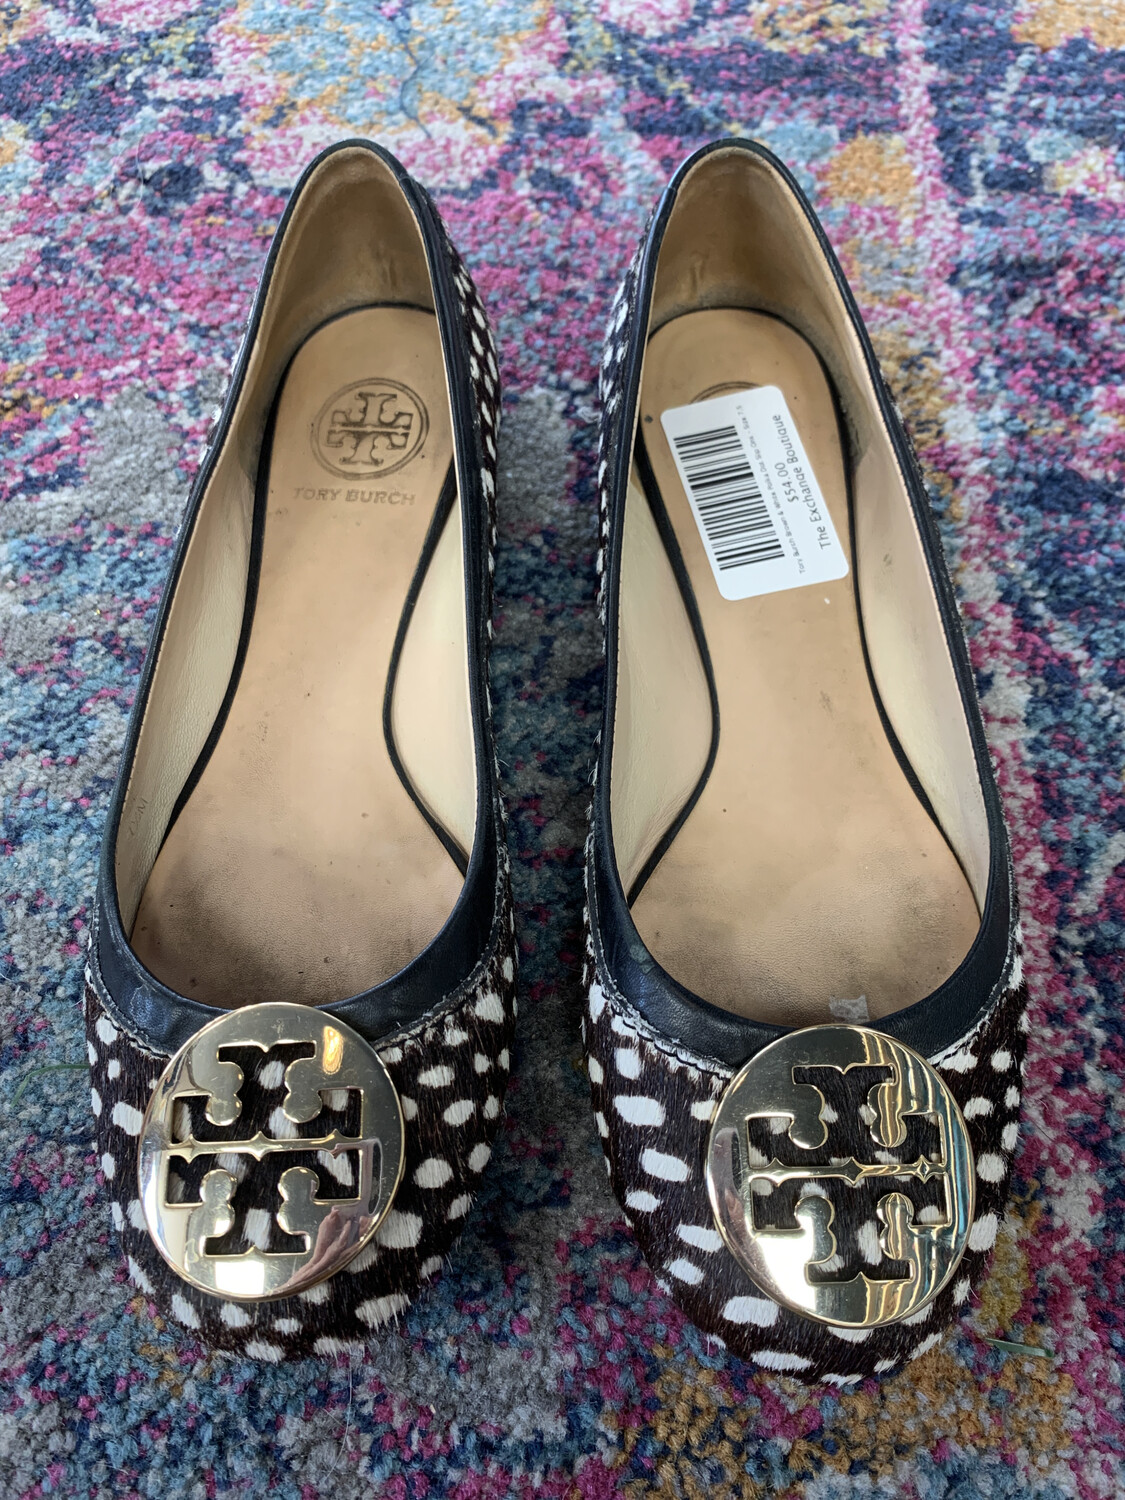 Tory Burch Brown & White Polka Dot Slip Ons - Size 7.5